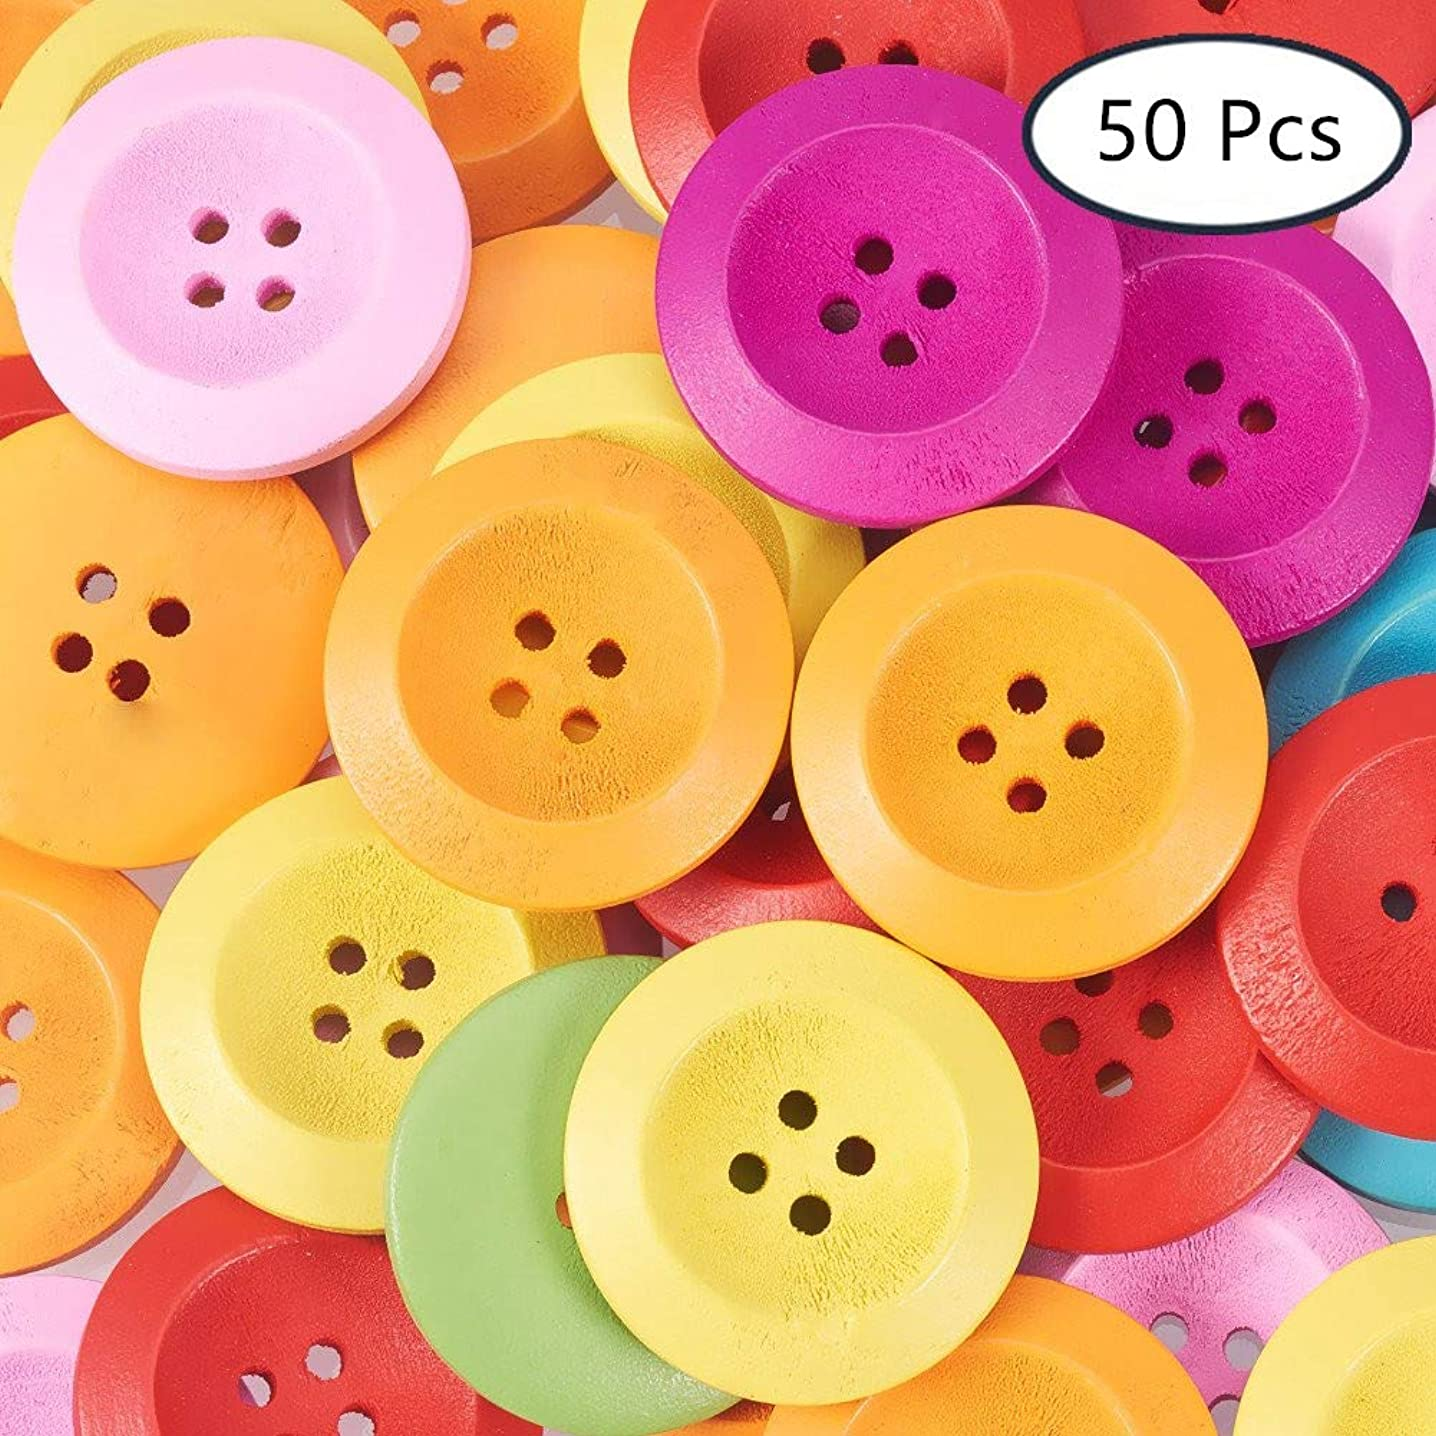 SUNNYCLUE 50PCS 4 Hole Assorted Color Flat Round Wooden Buttons for Sewing Scrapbooking Embelishments Crafts Jewellery Making Knitting 25mm